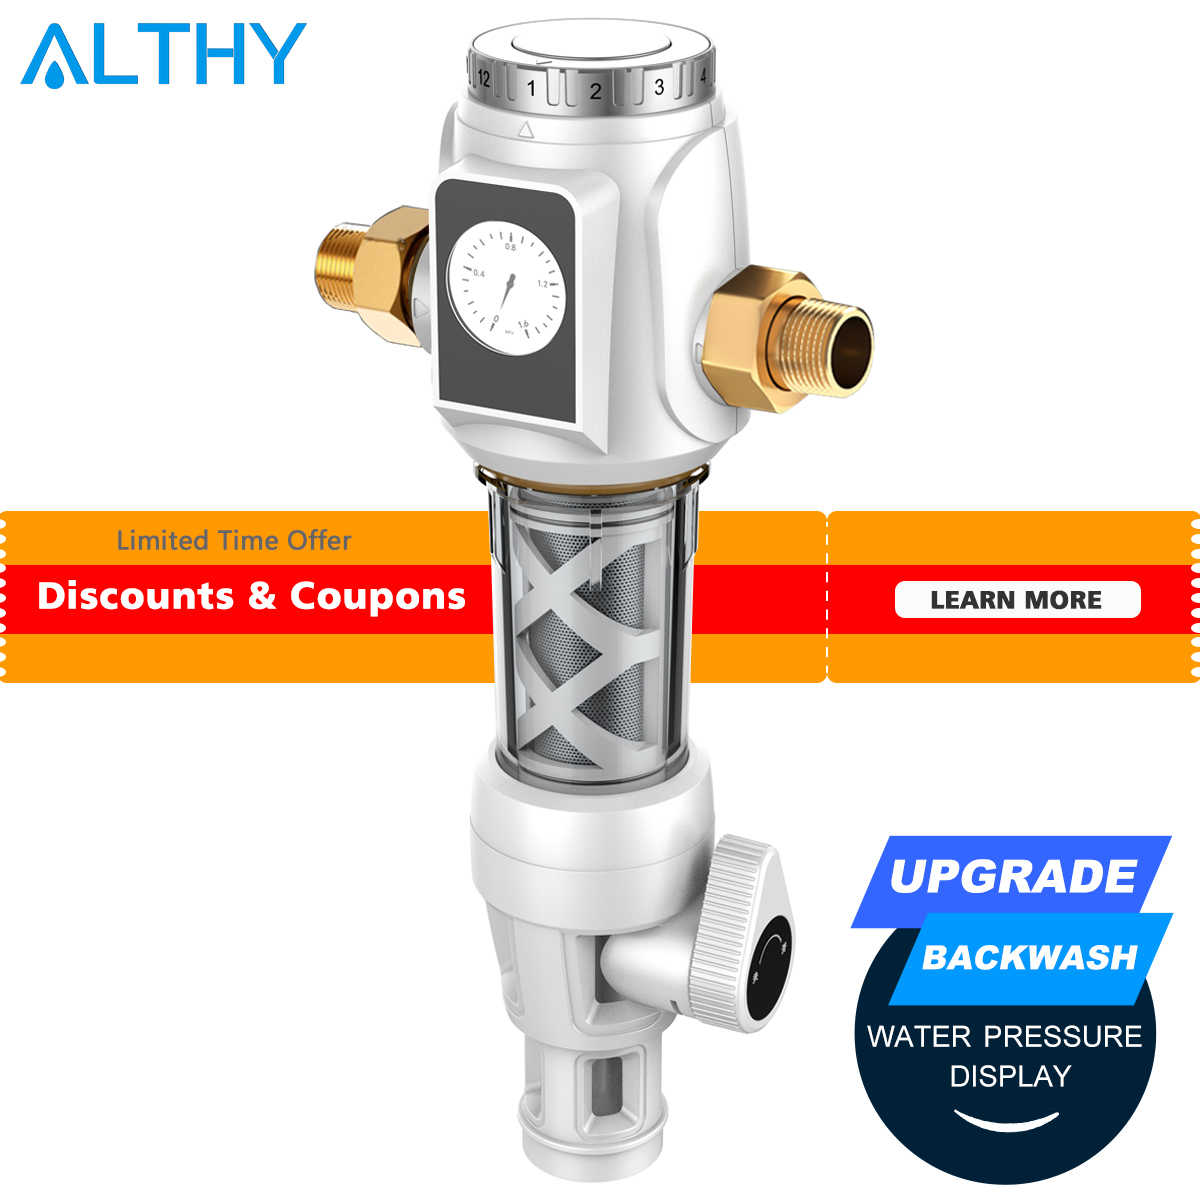 Althy Central Pre Filter Seluruh Rumah-Filter Air Filter Purifier Siphon Backwash 3T 40μm Filter Ganda Tekanan alat Ukur